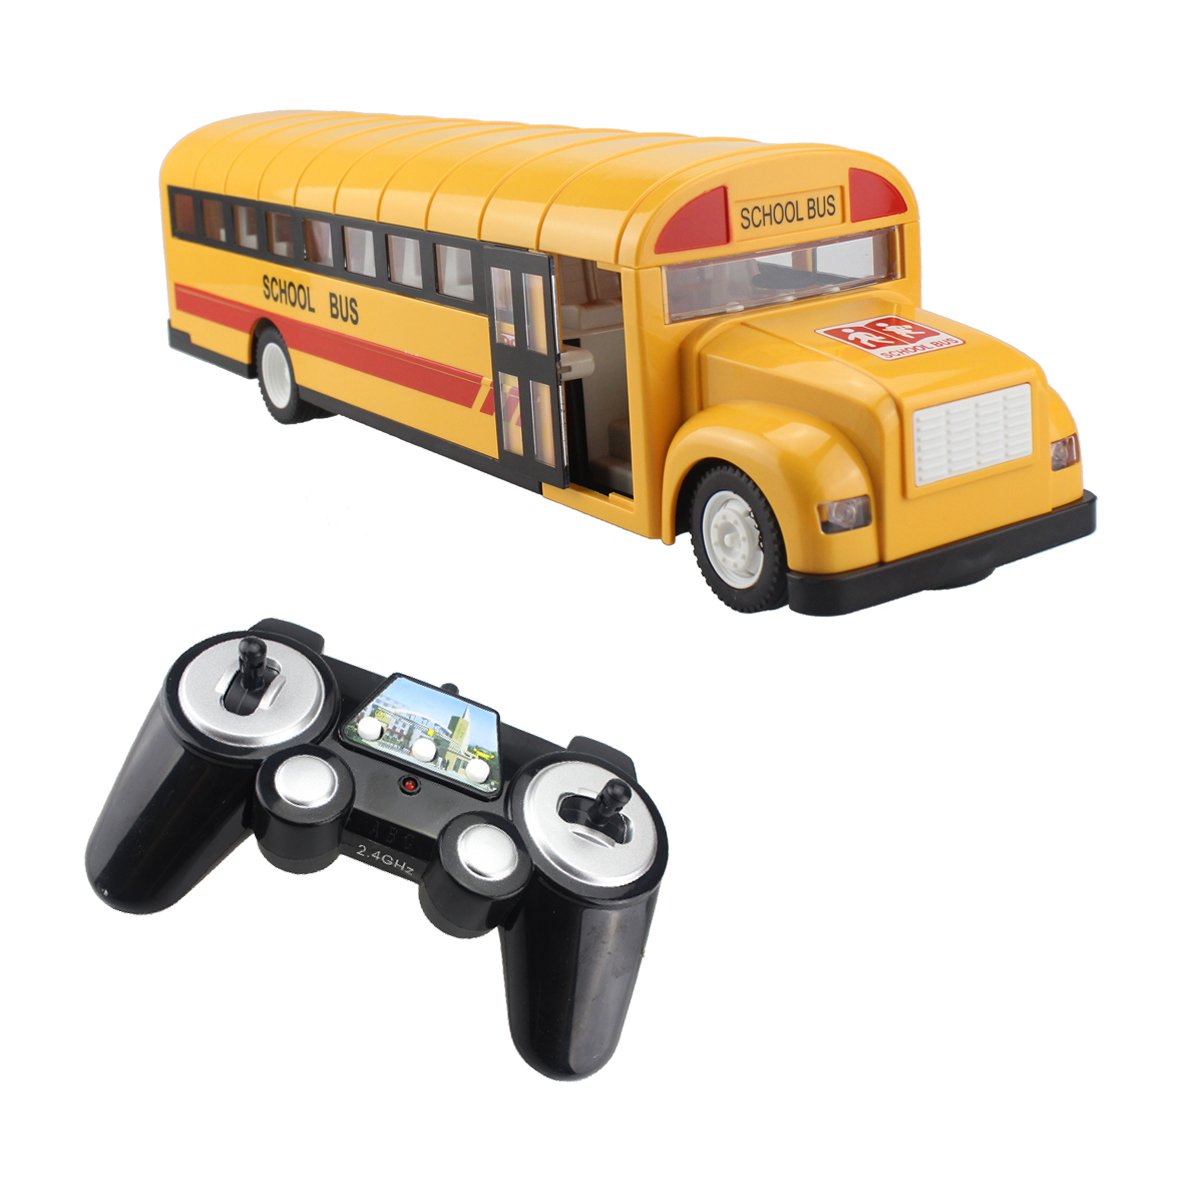 Fisca RC School Bus Remote Control Car Vehicles 6 Ch 2.4G Opening Doors Acceleration & Deceleration Toys with Simulated Sounds and LED Lights Rechargeable Electronic Hobby Truck for Kids